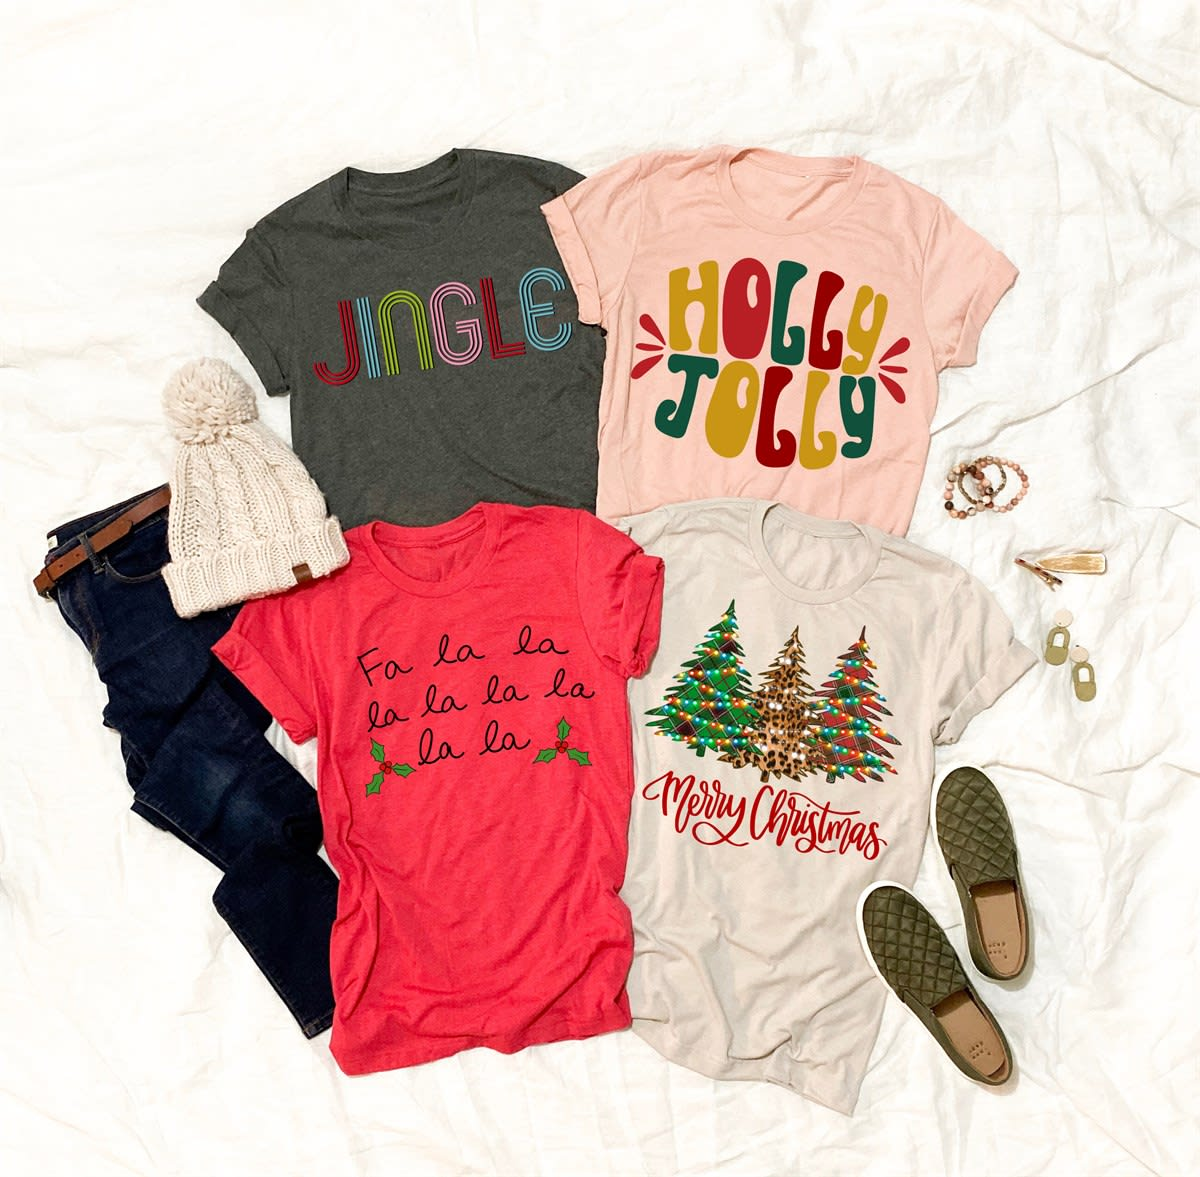 Retro Christmas Tees